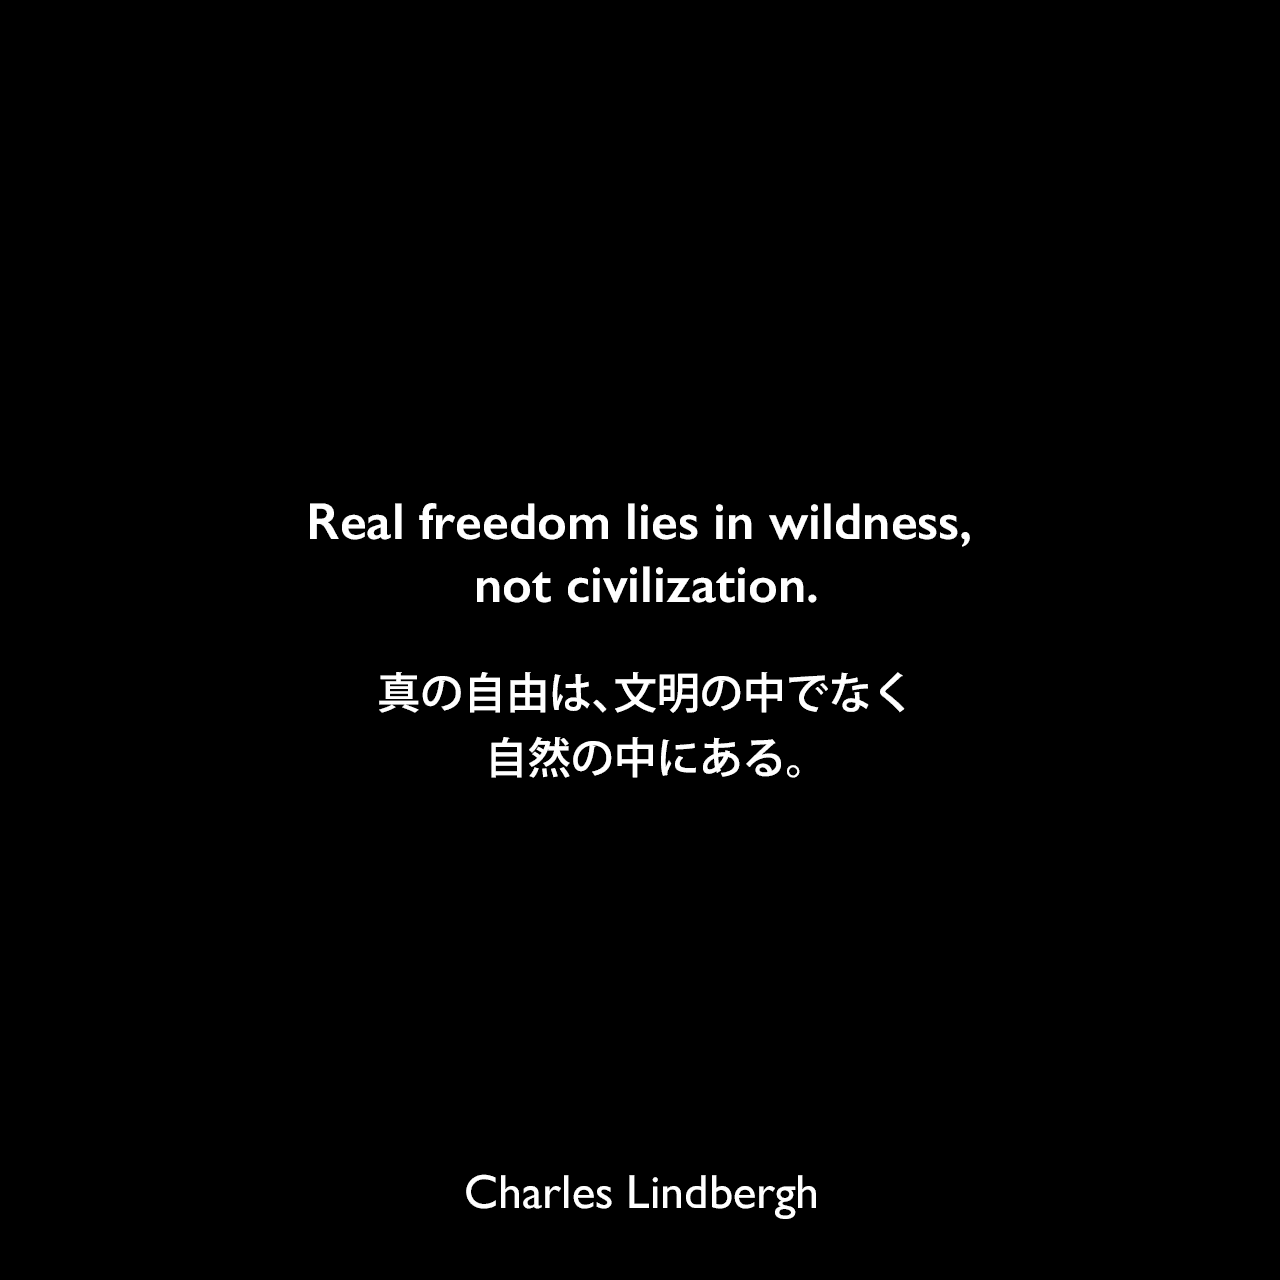 Real freedom lies in wildness, not civilization.真の自由は、文明の中でなく自然の中にある。Charles Lindbergh